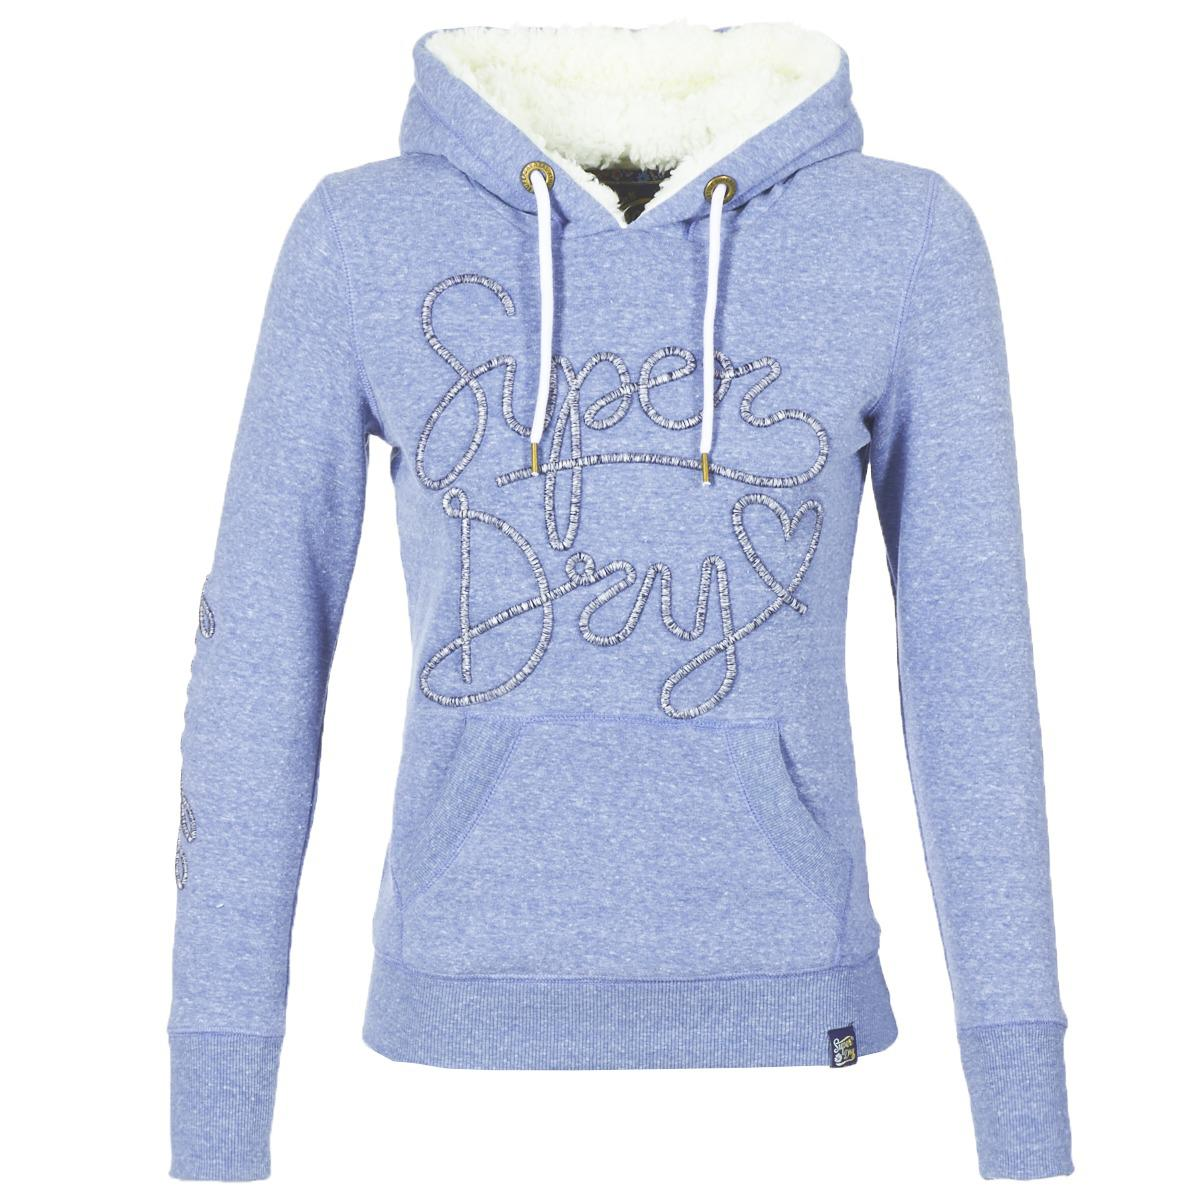 c1d61560cbdae Superdry Aria Applique Borg Hoodie Sweatshirt in Blue - Lyst